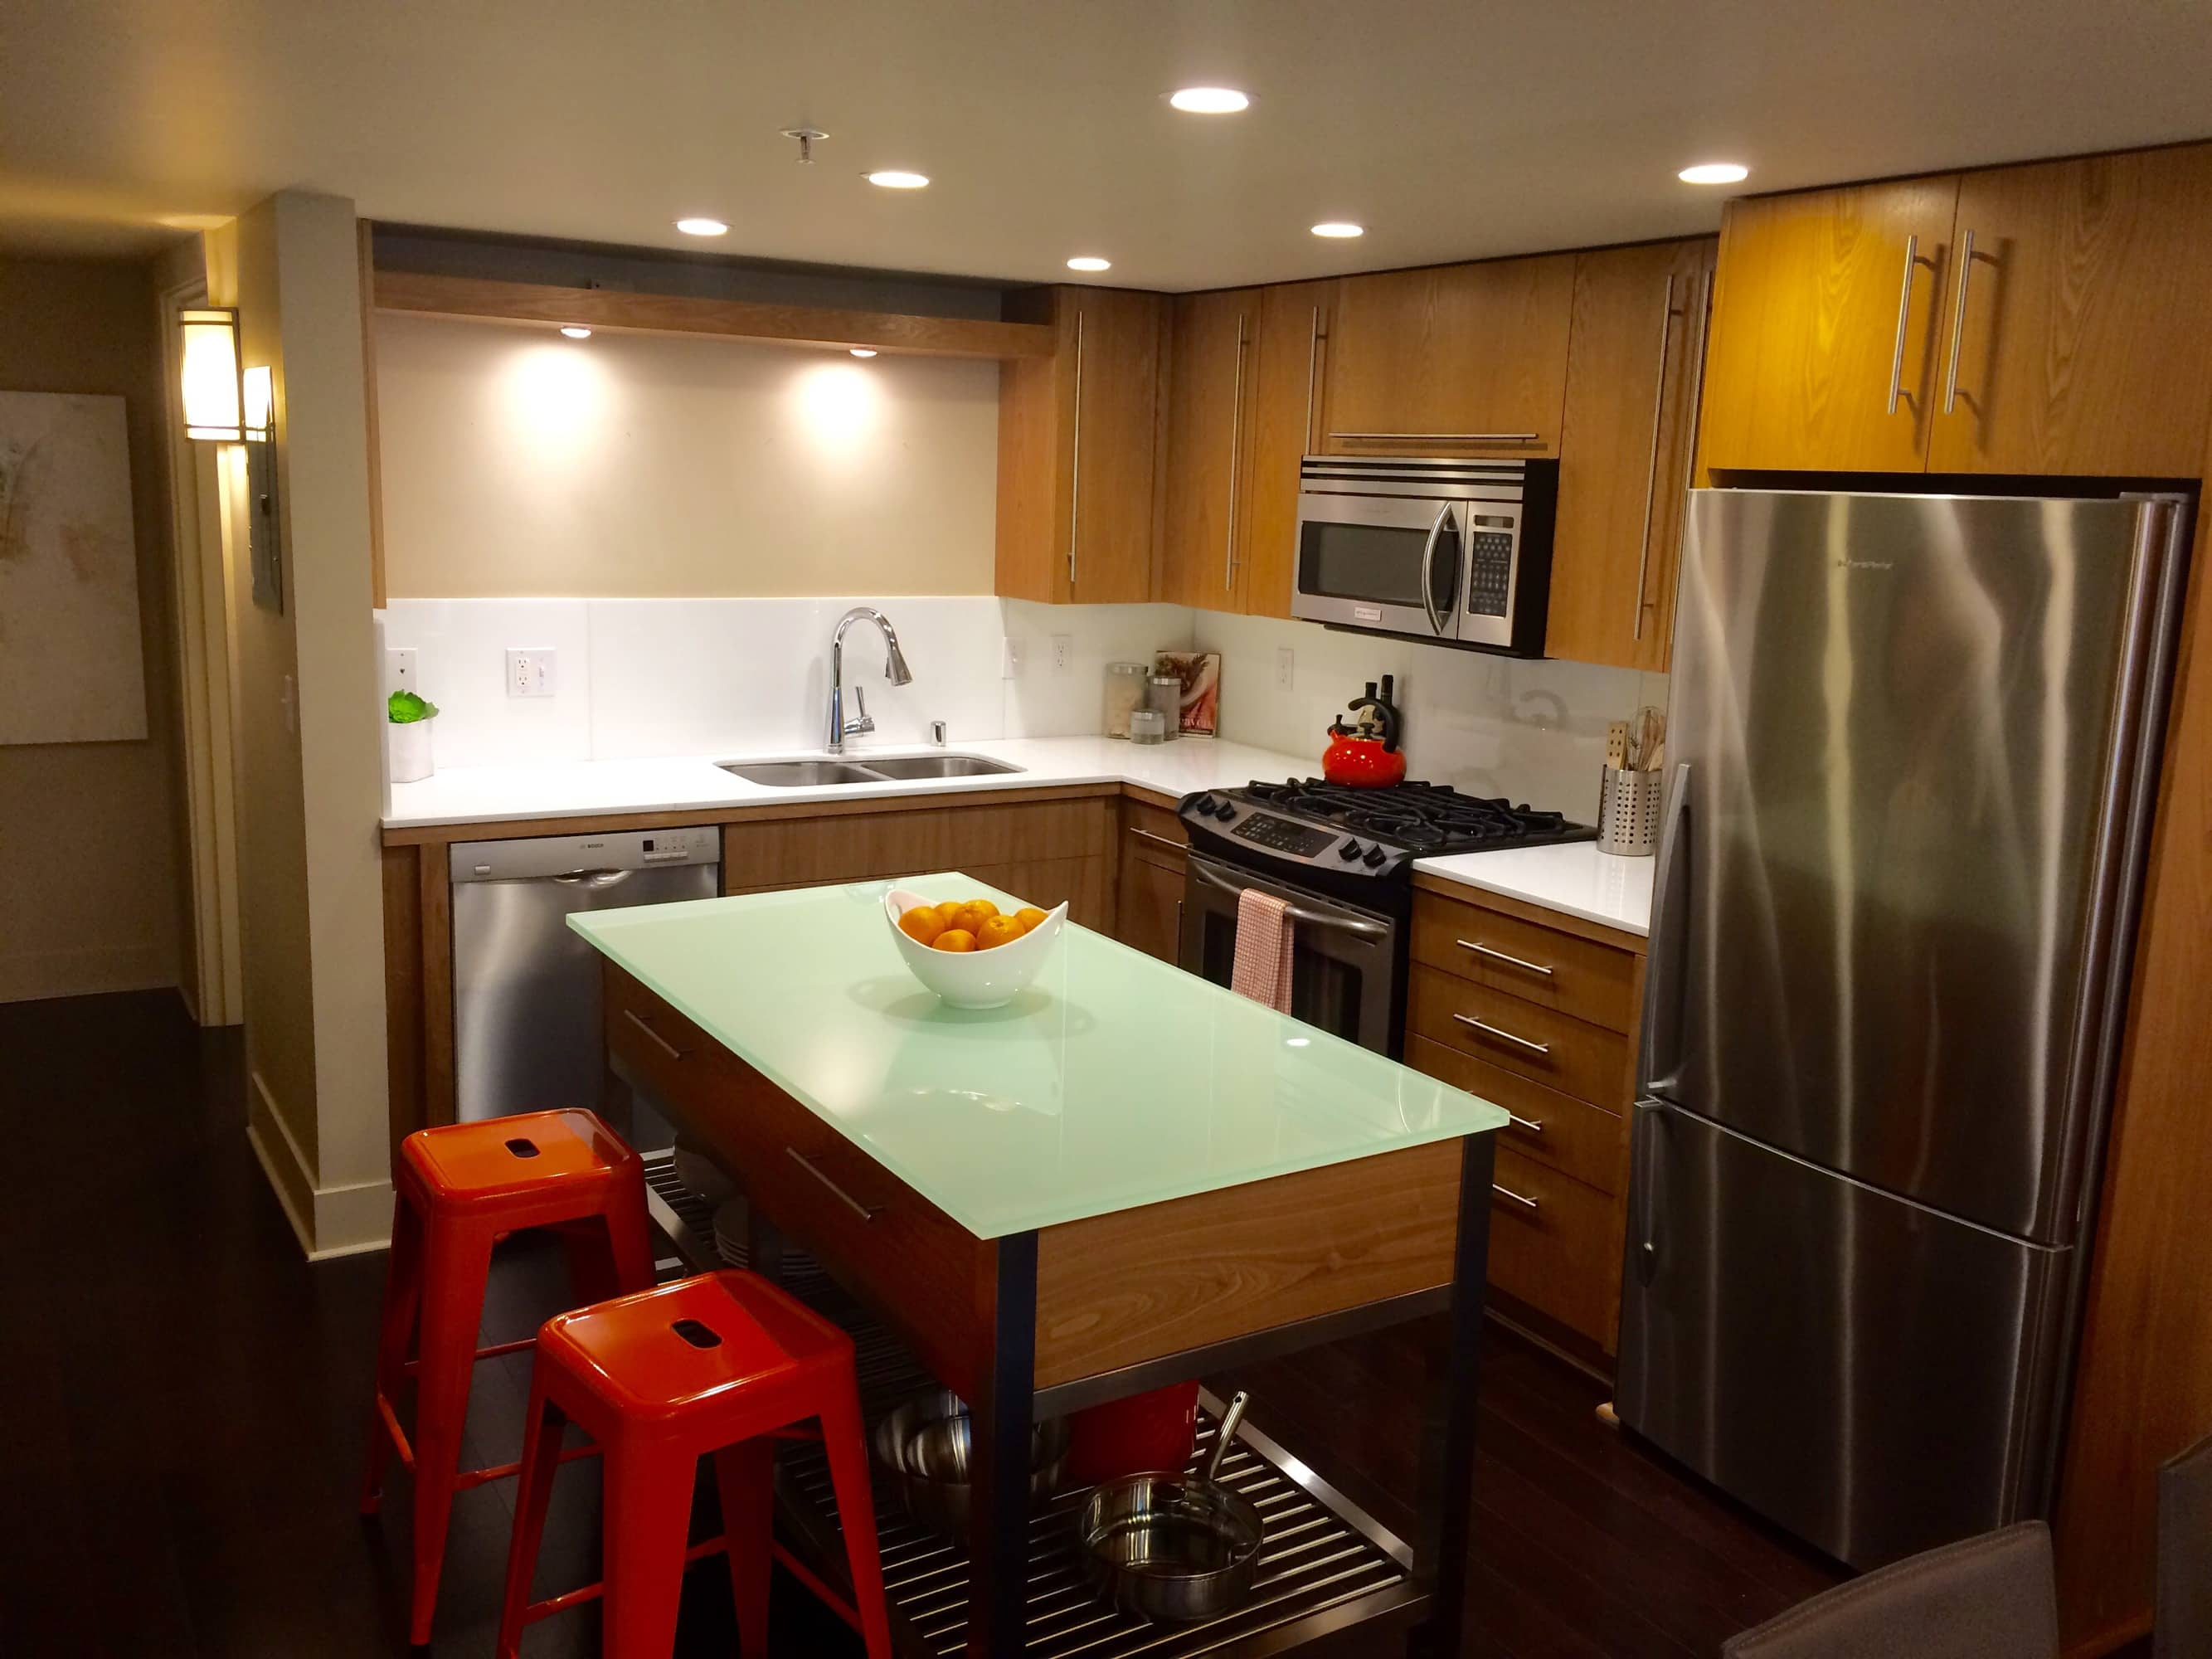 Efficient kitchen with island counter for more counter space or casual dining